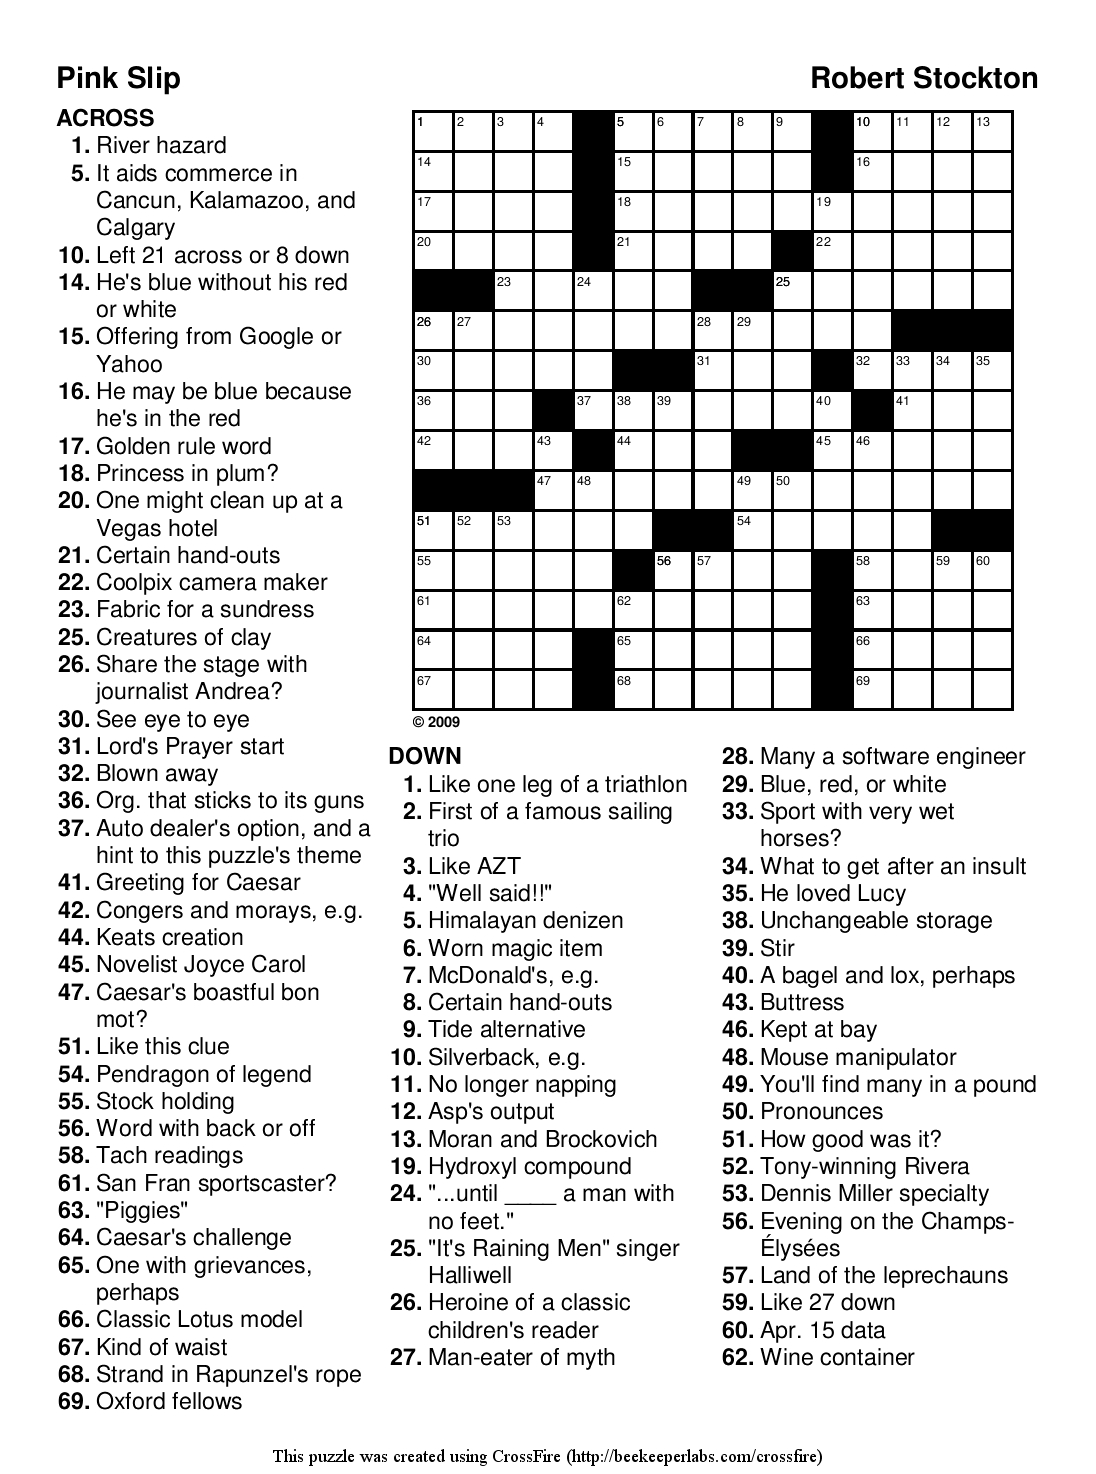 Printable Puzzles For Adults | Easy Word Puzzles Printable Festivals - Simple Crossword Puzzles Printable Uk